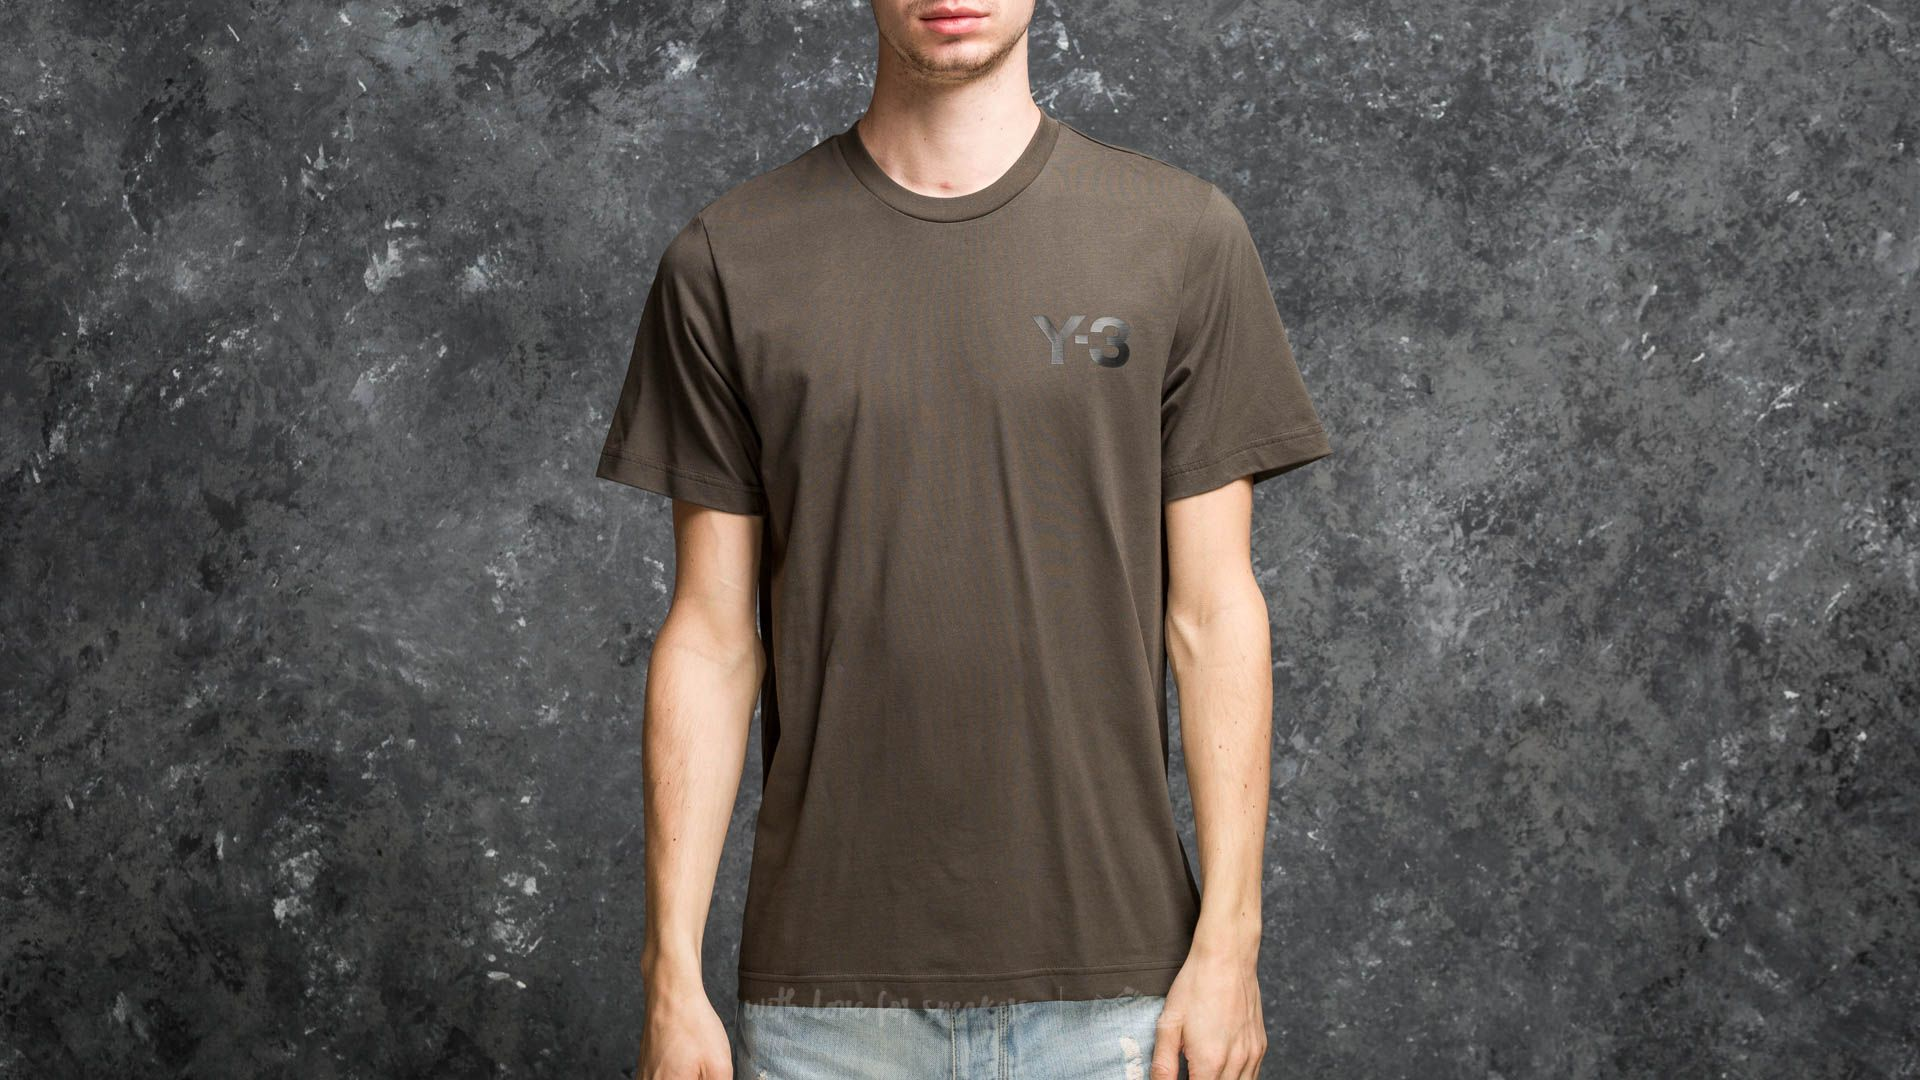 Y-3 M Classic Logo Front Tee Dark Olive - 18008